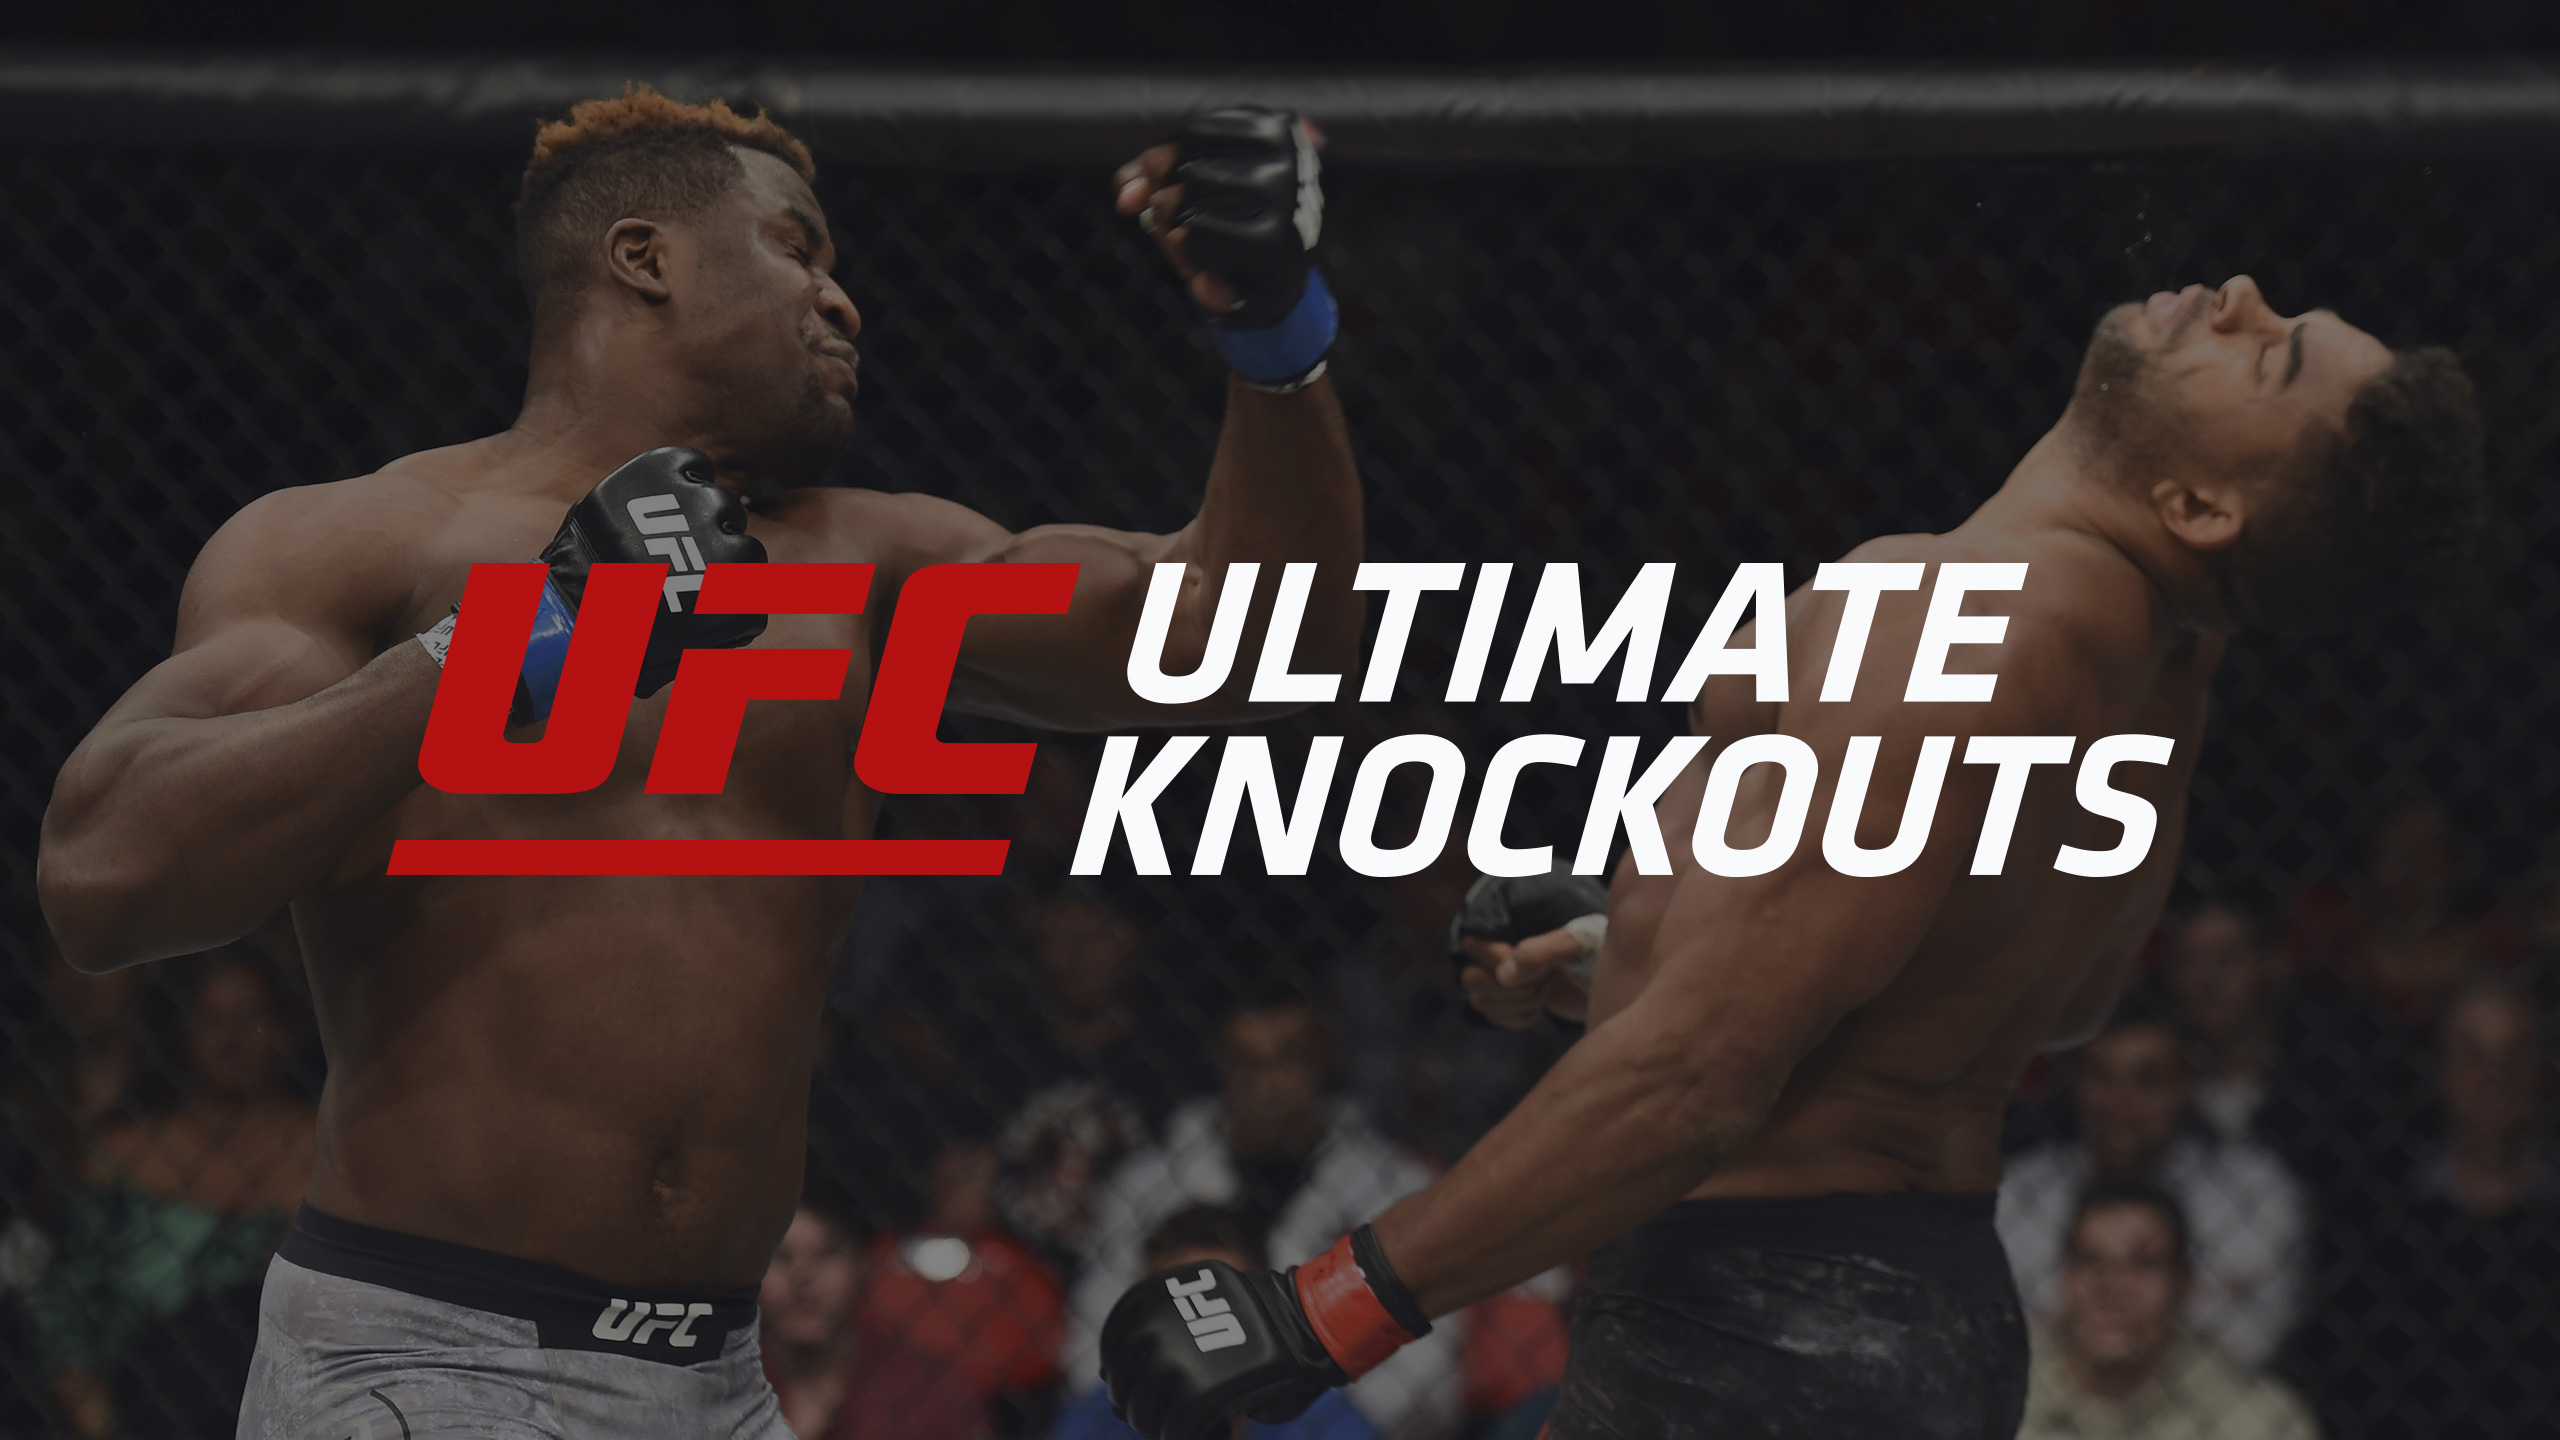 UFC Ultimate Knockouts: Title Fight Knockouts